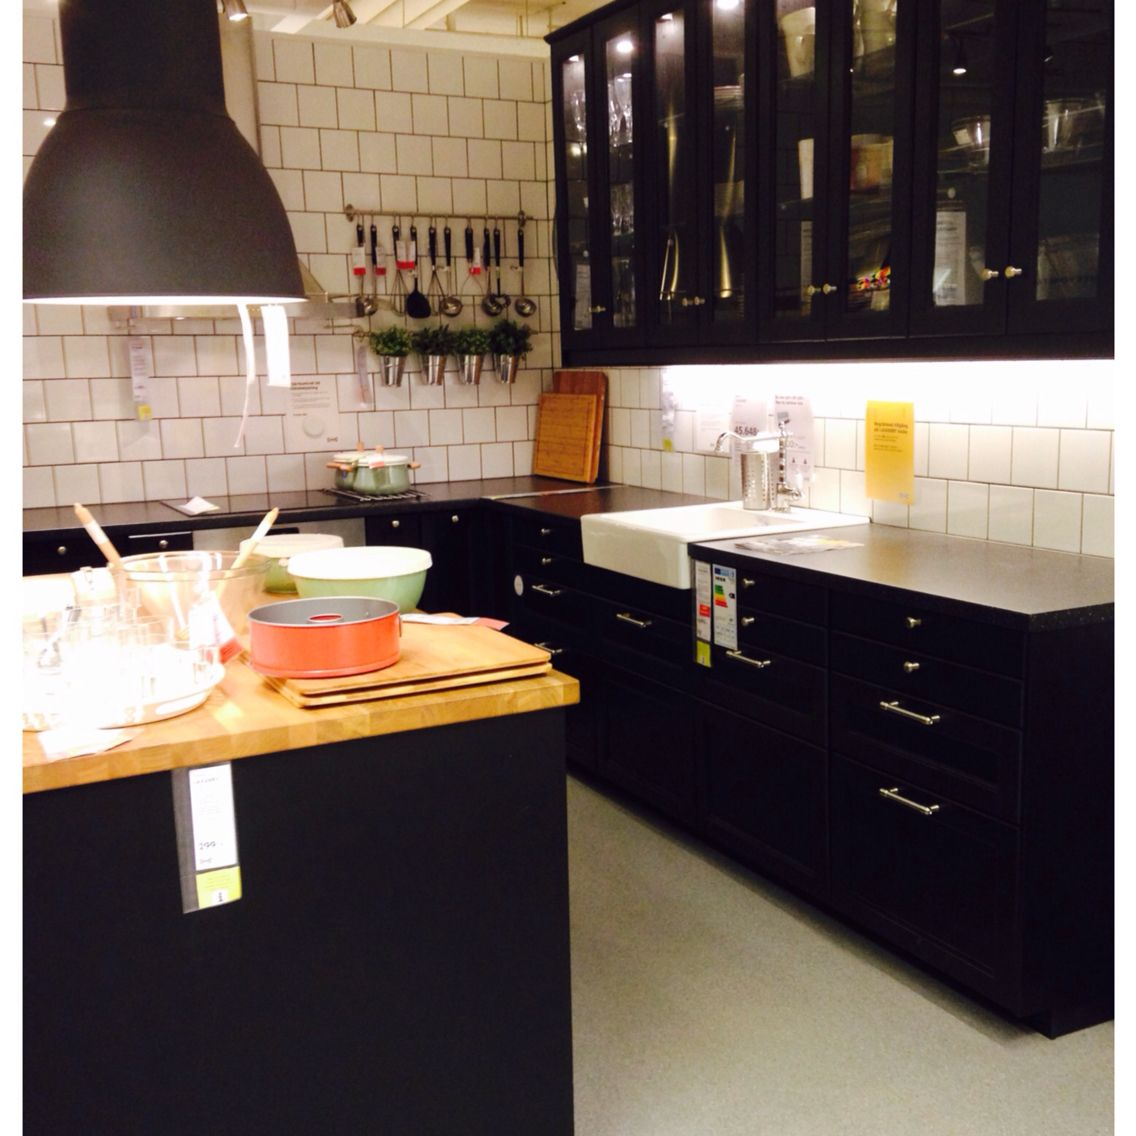 Cuisine Laxarby Ikea Cheap Ikea Ringhult Kitchen With: Laxarby - Snyggt IKEA!